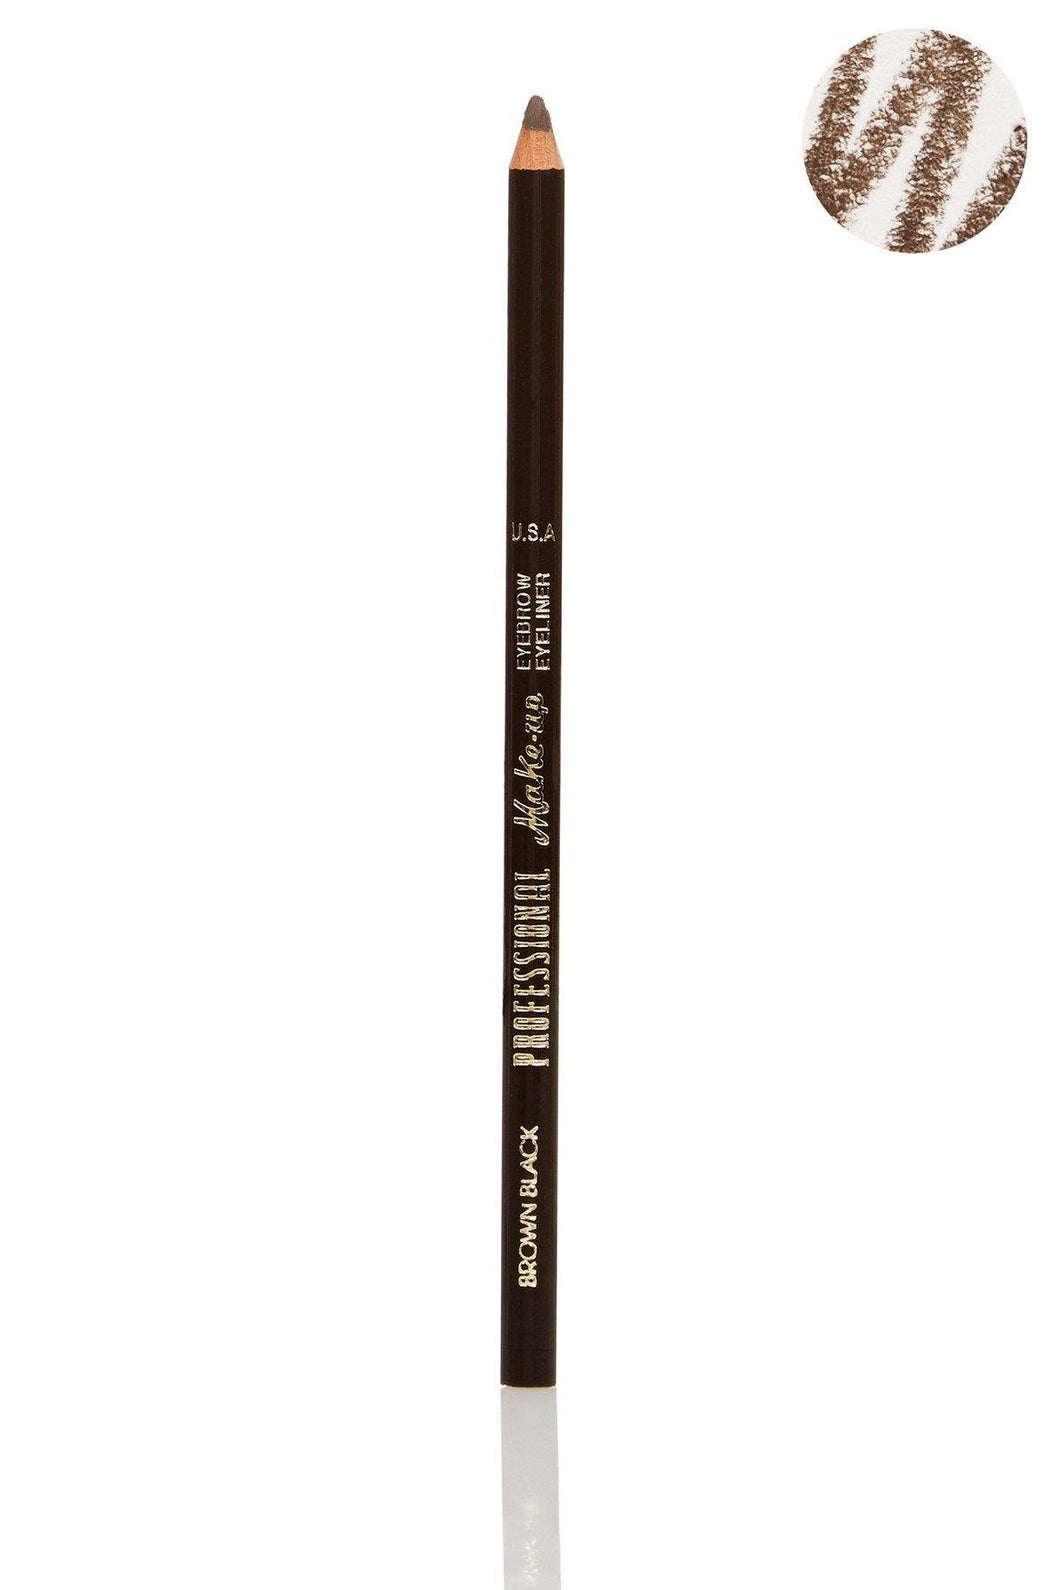 Brown & Black Eyebrow Eyeliner Pencil